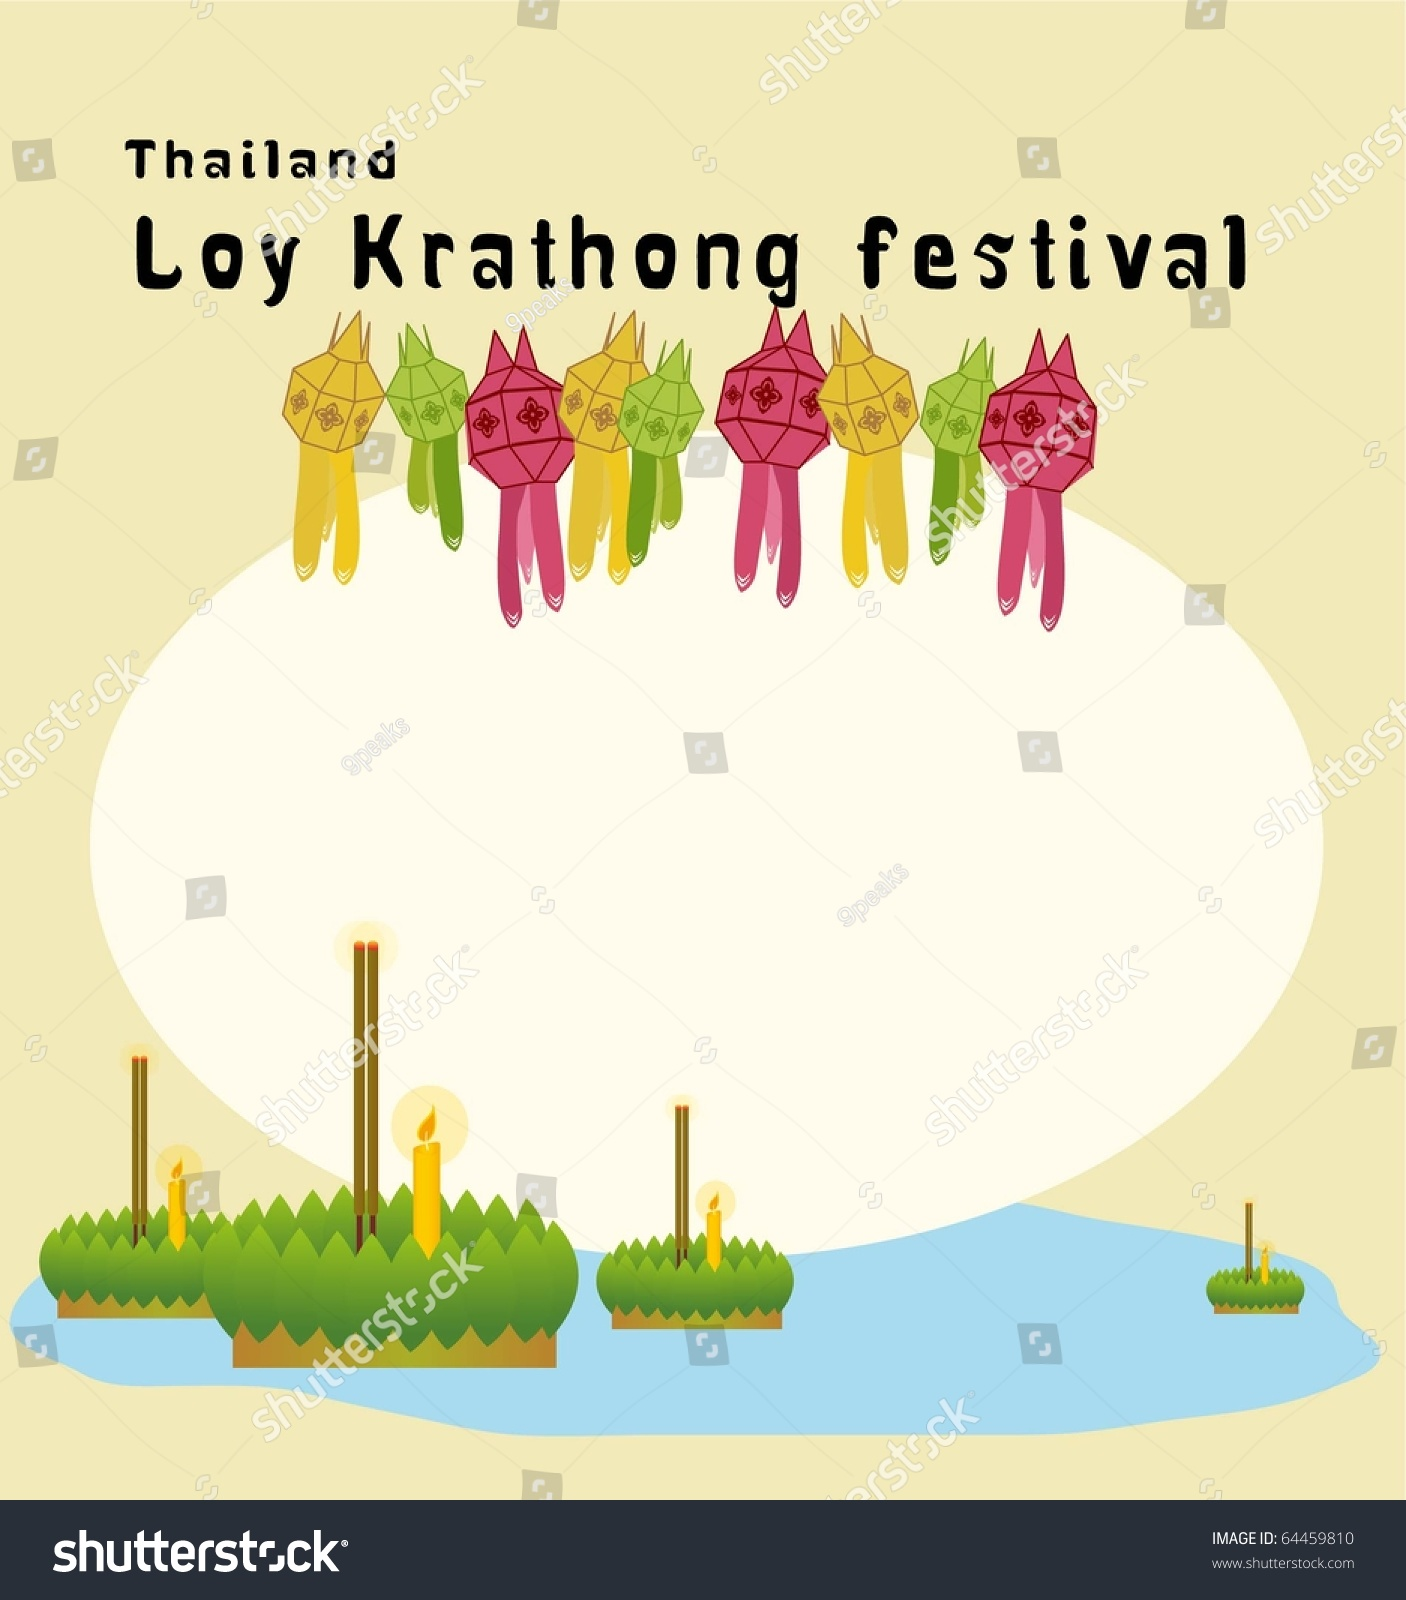 Thailand loy krathong festival invitation card stock vector 64459810 loy krathong festival invitation card stopboris Images